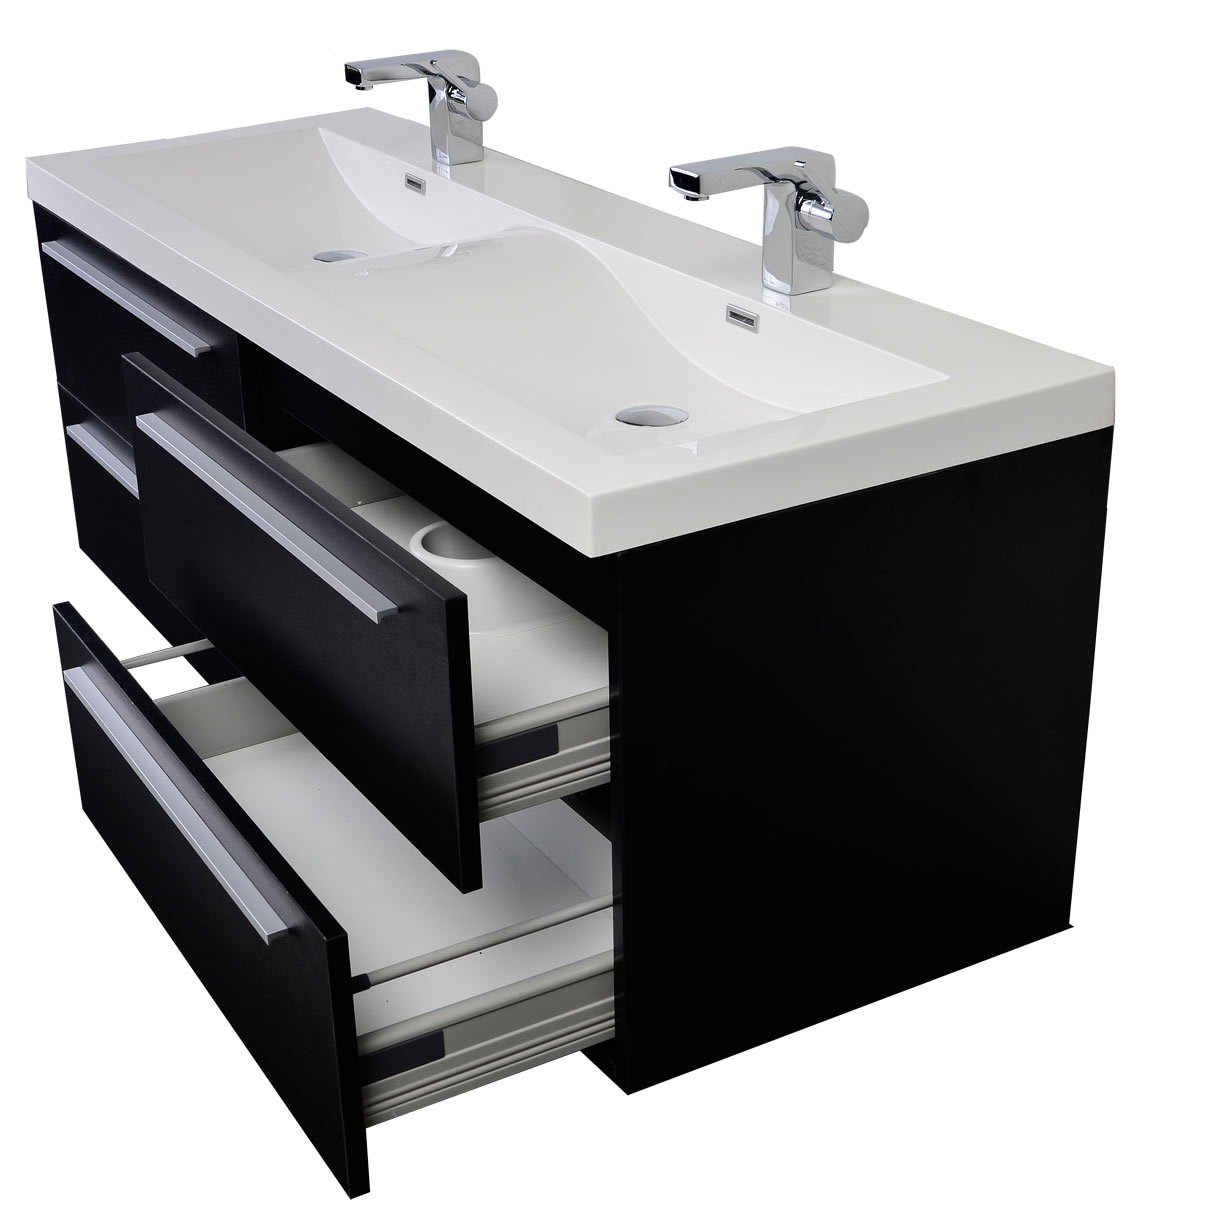 57 Inch Modern Double Sink Vanity Set With Wavy Sinks